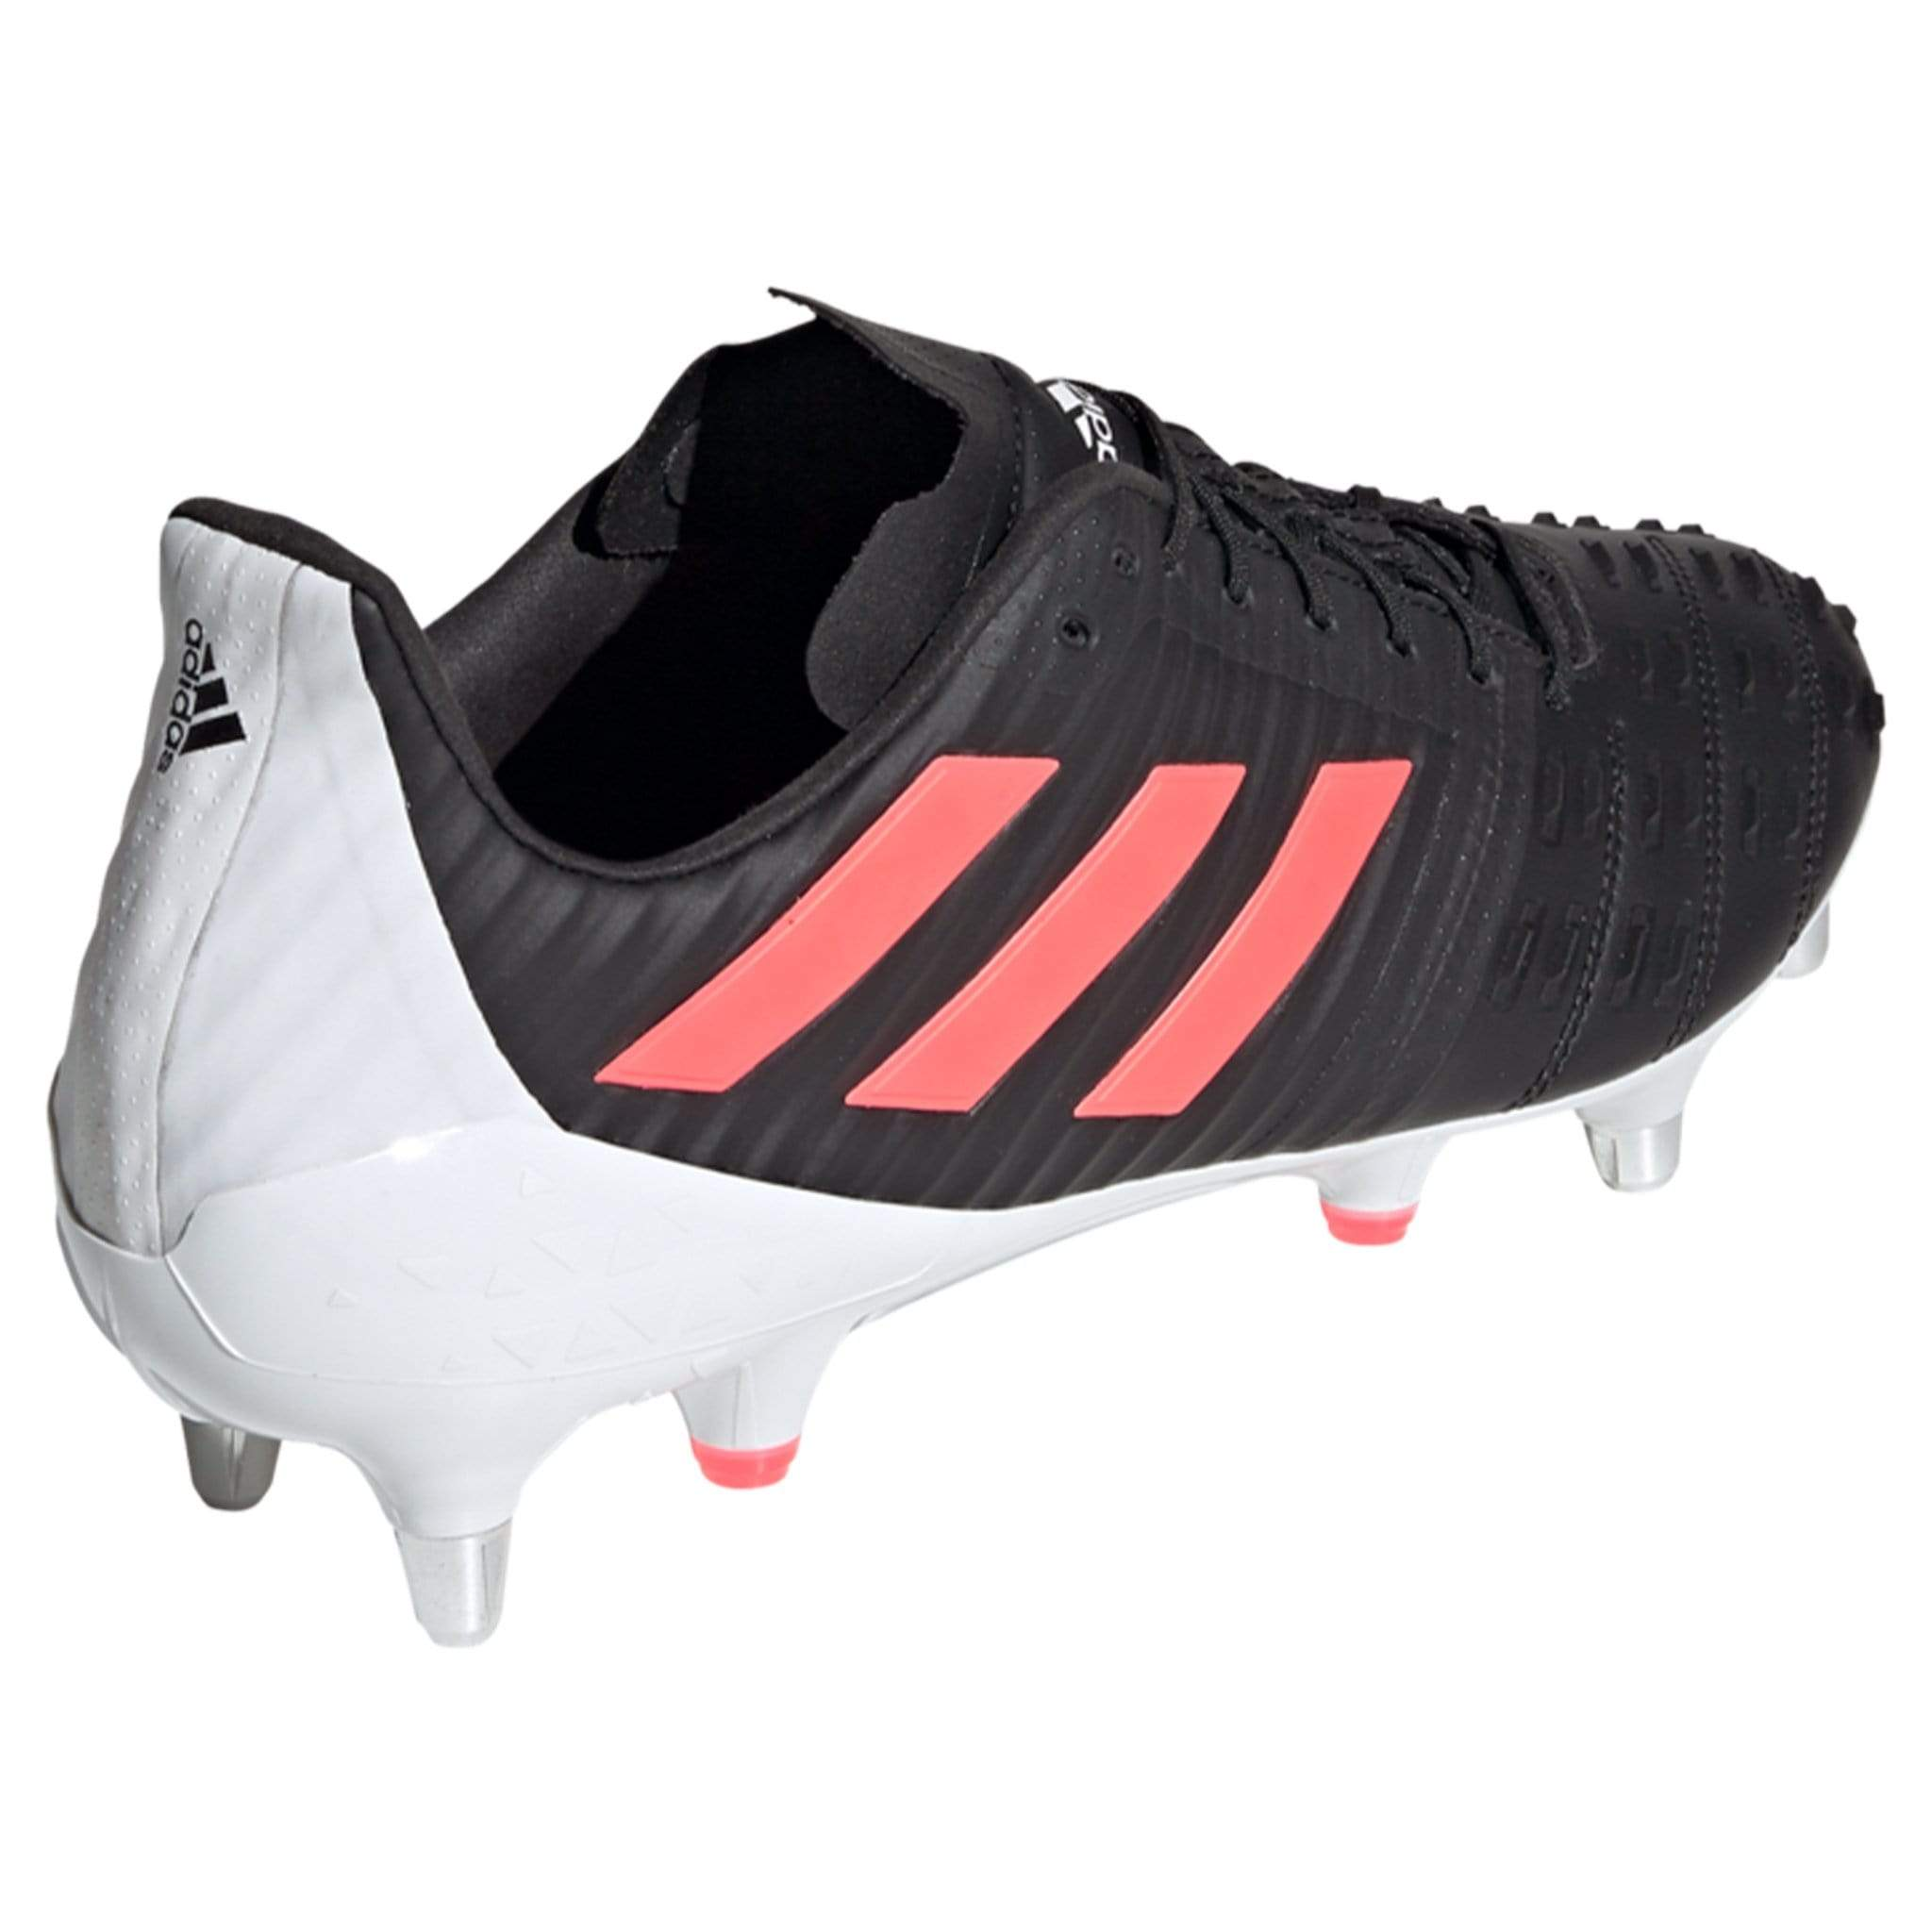 Side View Adidas Rugby Boot Black With Pink Stripes And White Back